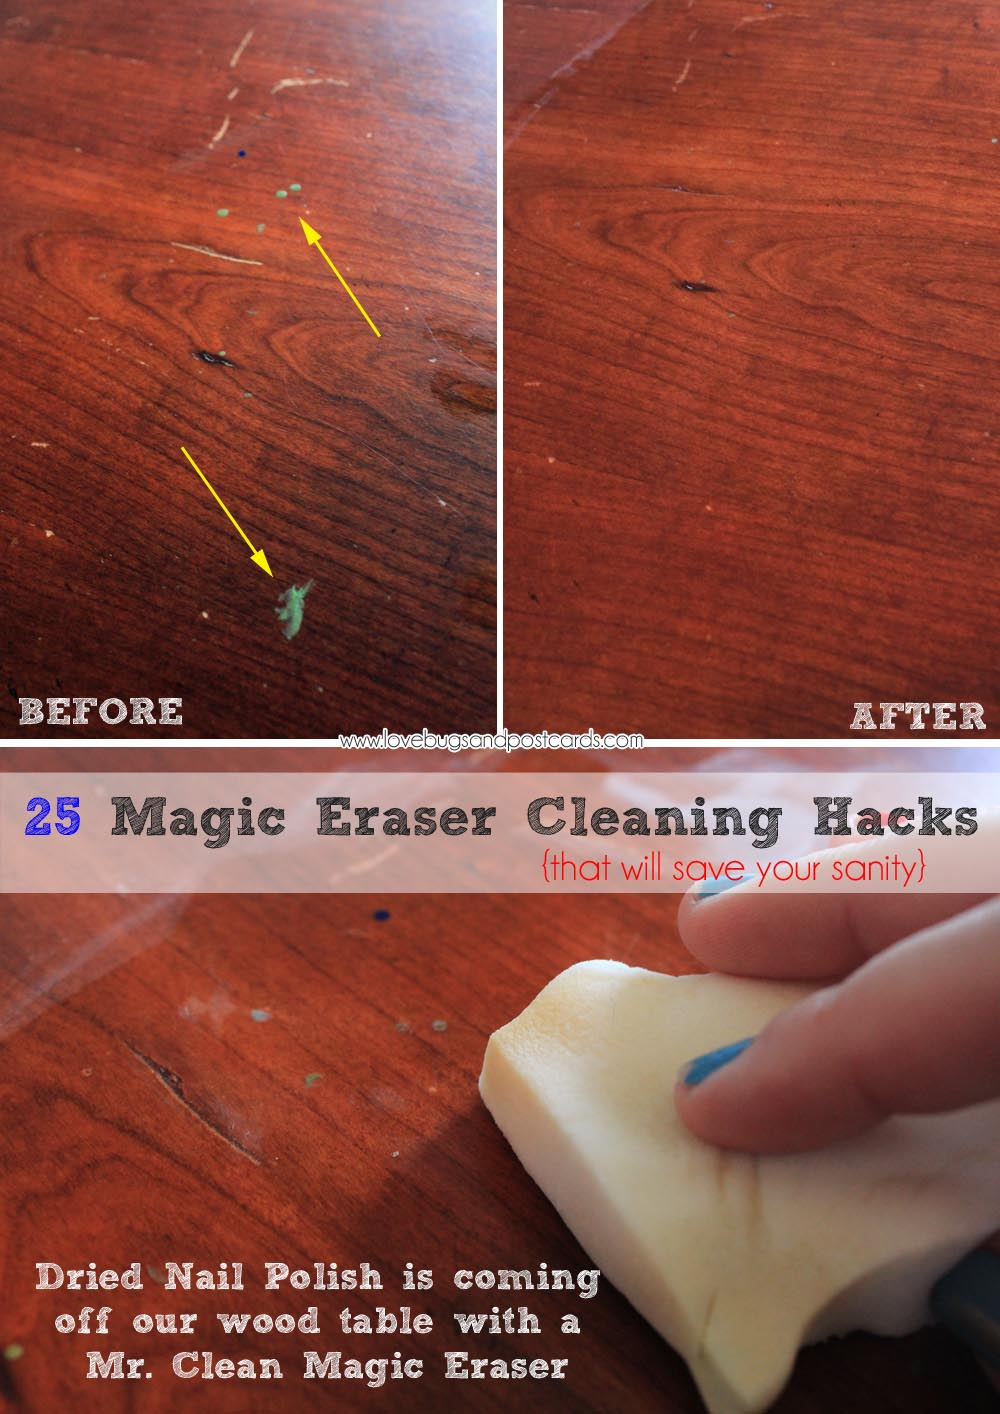 25 magic eraser cleaning hacks that will save your sanity lovebugs and postcards. Black Bedroom Furniture Sets. Home Design Ideas